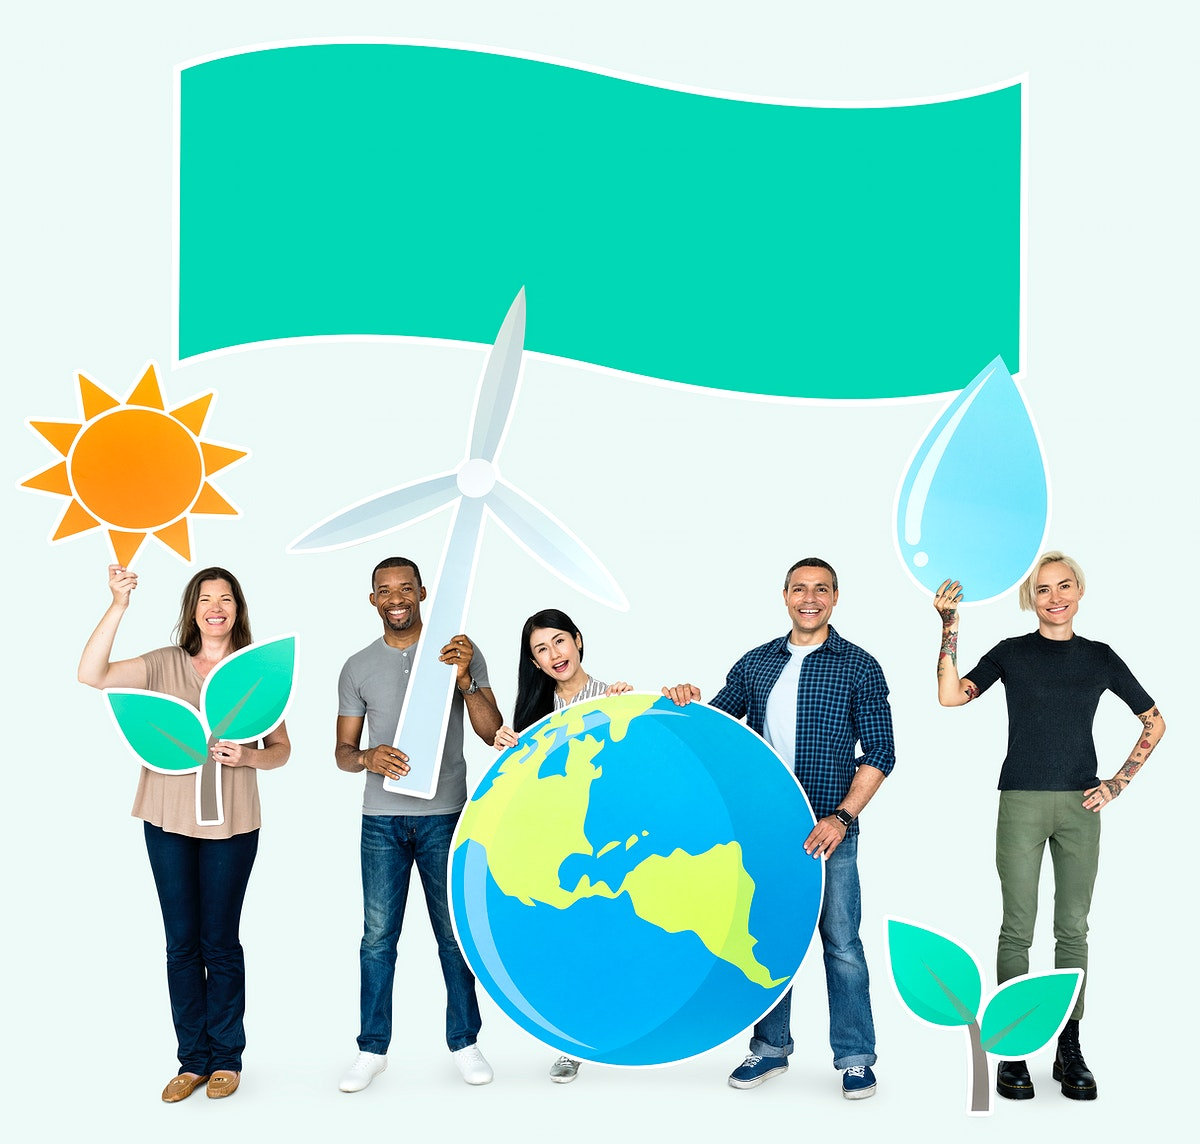 Group of diverse people holding eco-friendly icons